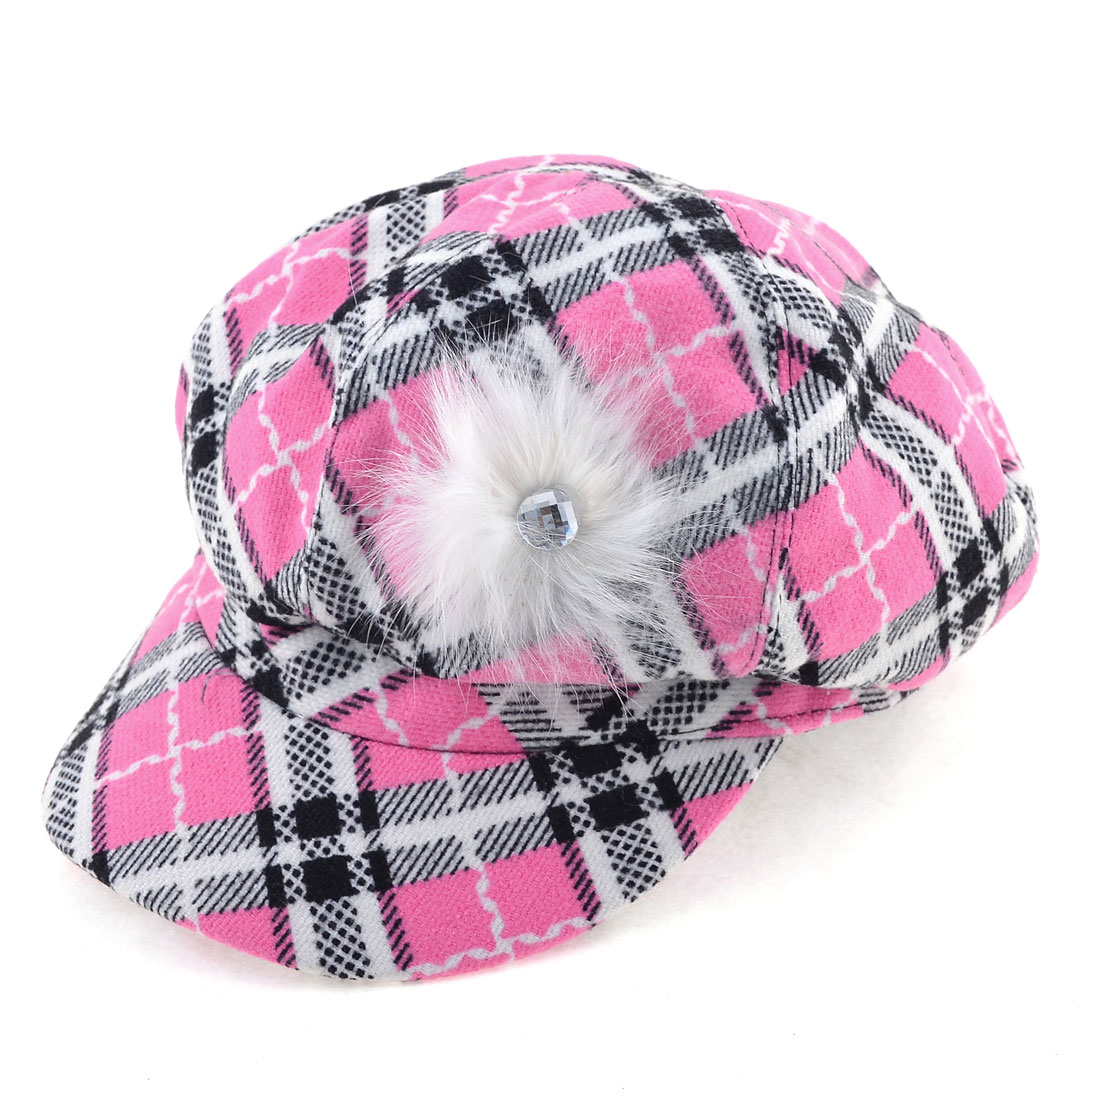 Ladies Plaid Pattern Cotton Blends Winter Spring Wear Peaked Cap Pink Black